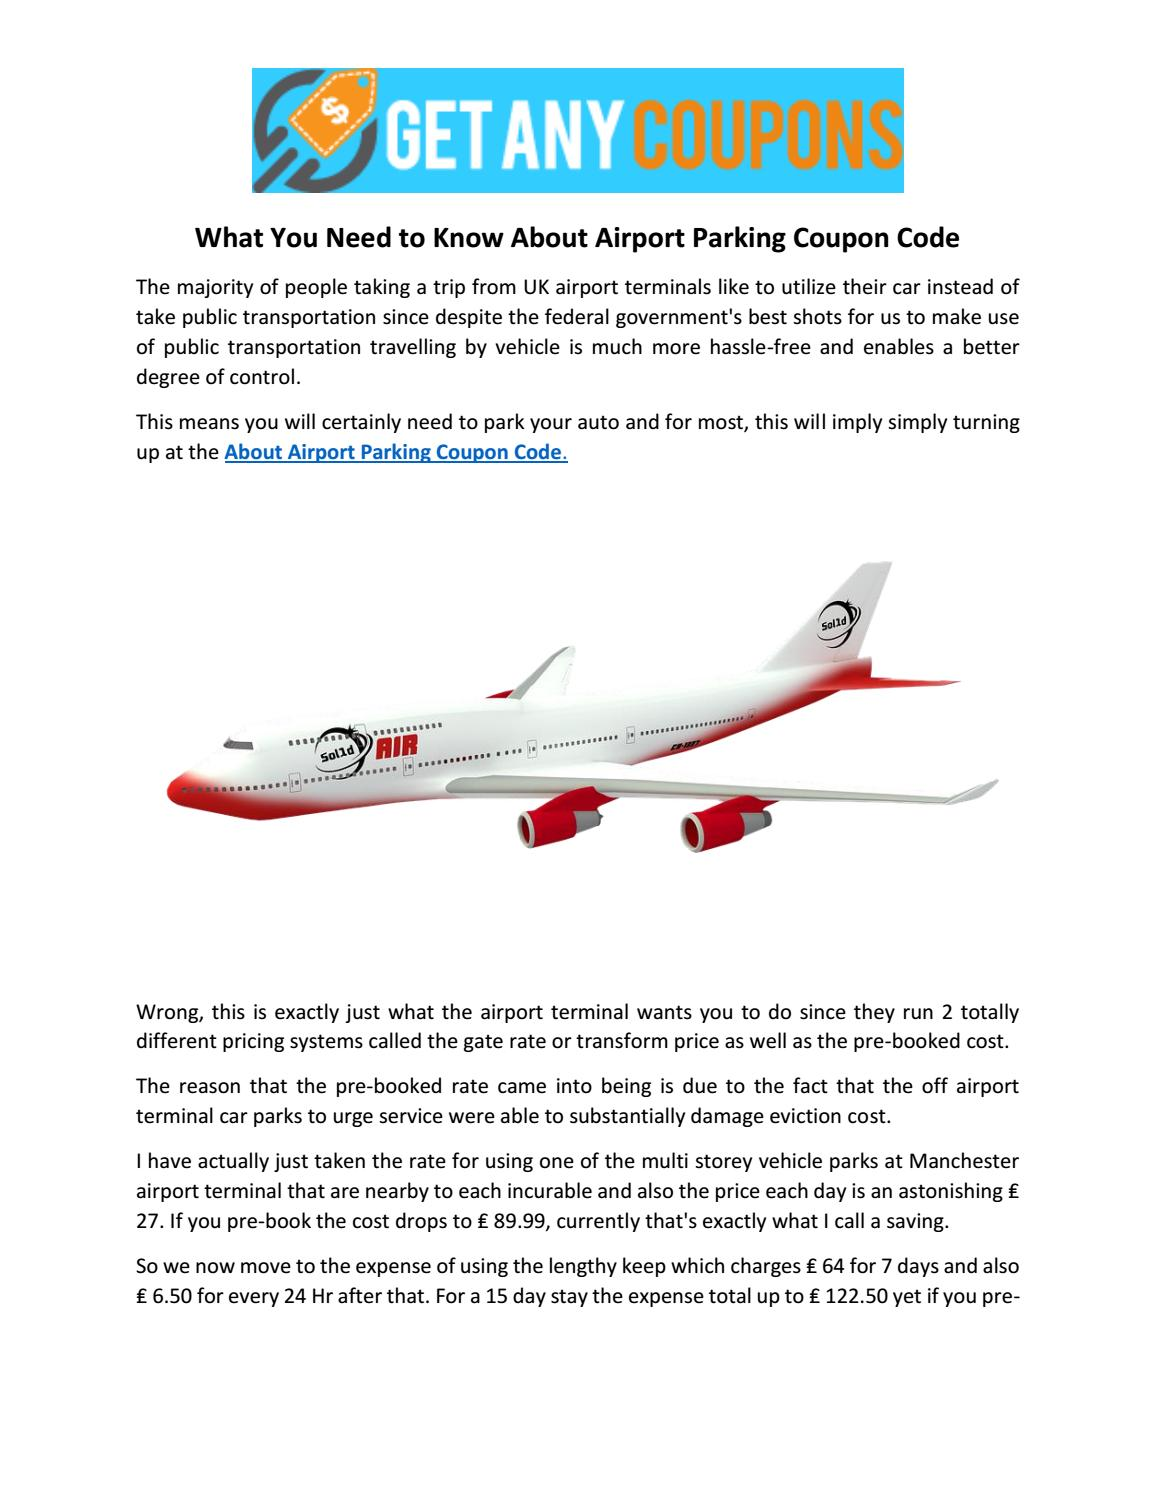 What You Need To Know About Airport Parking Coupon Code By